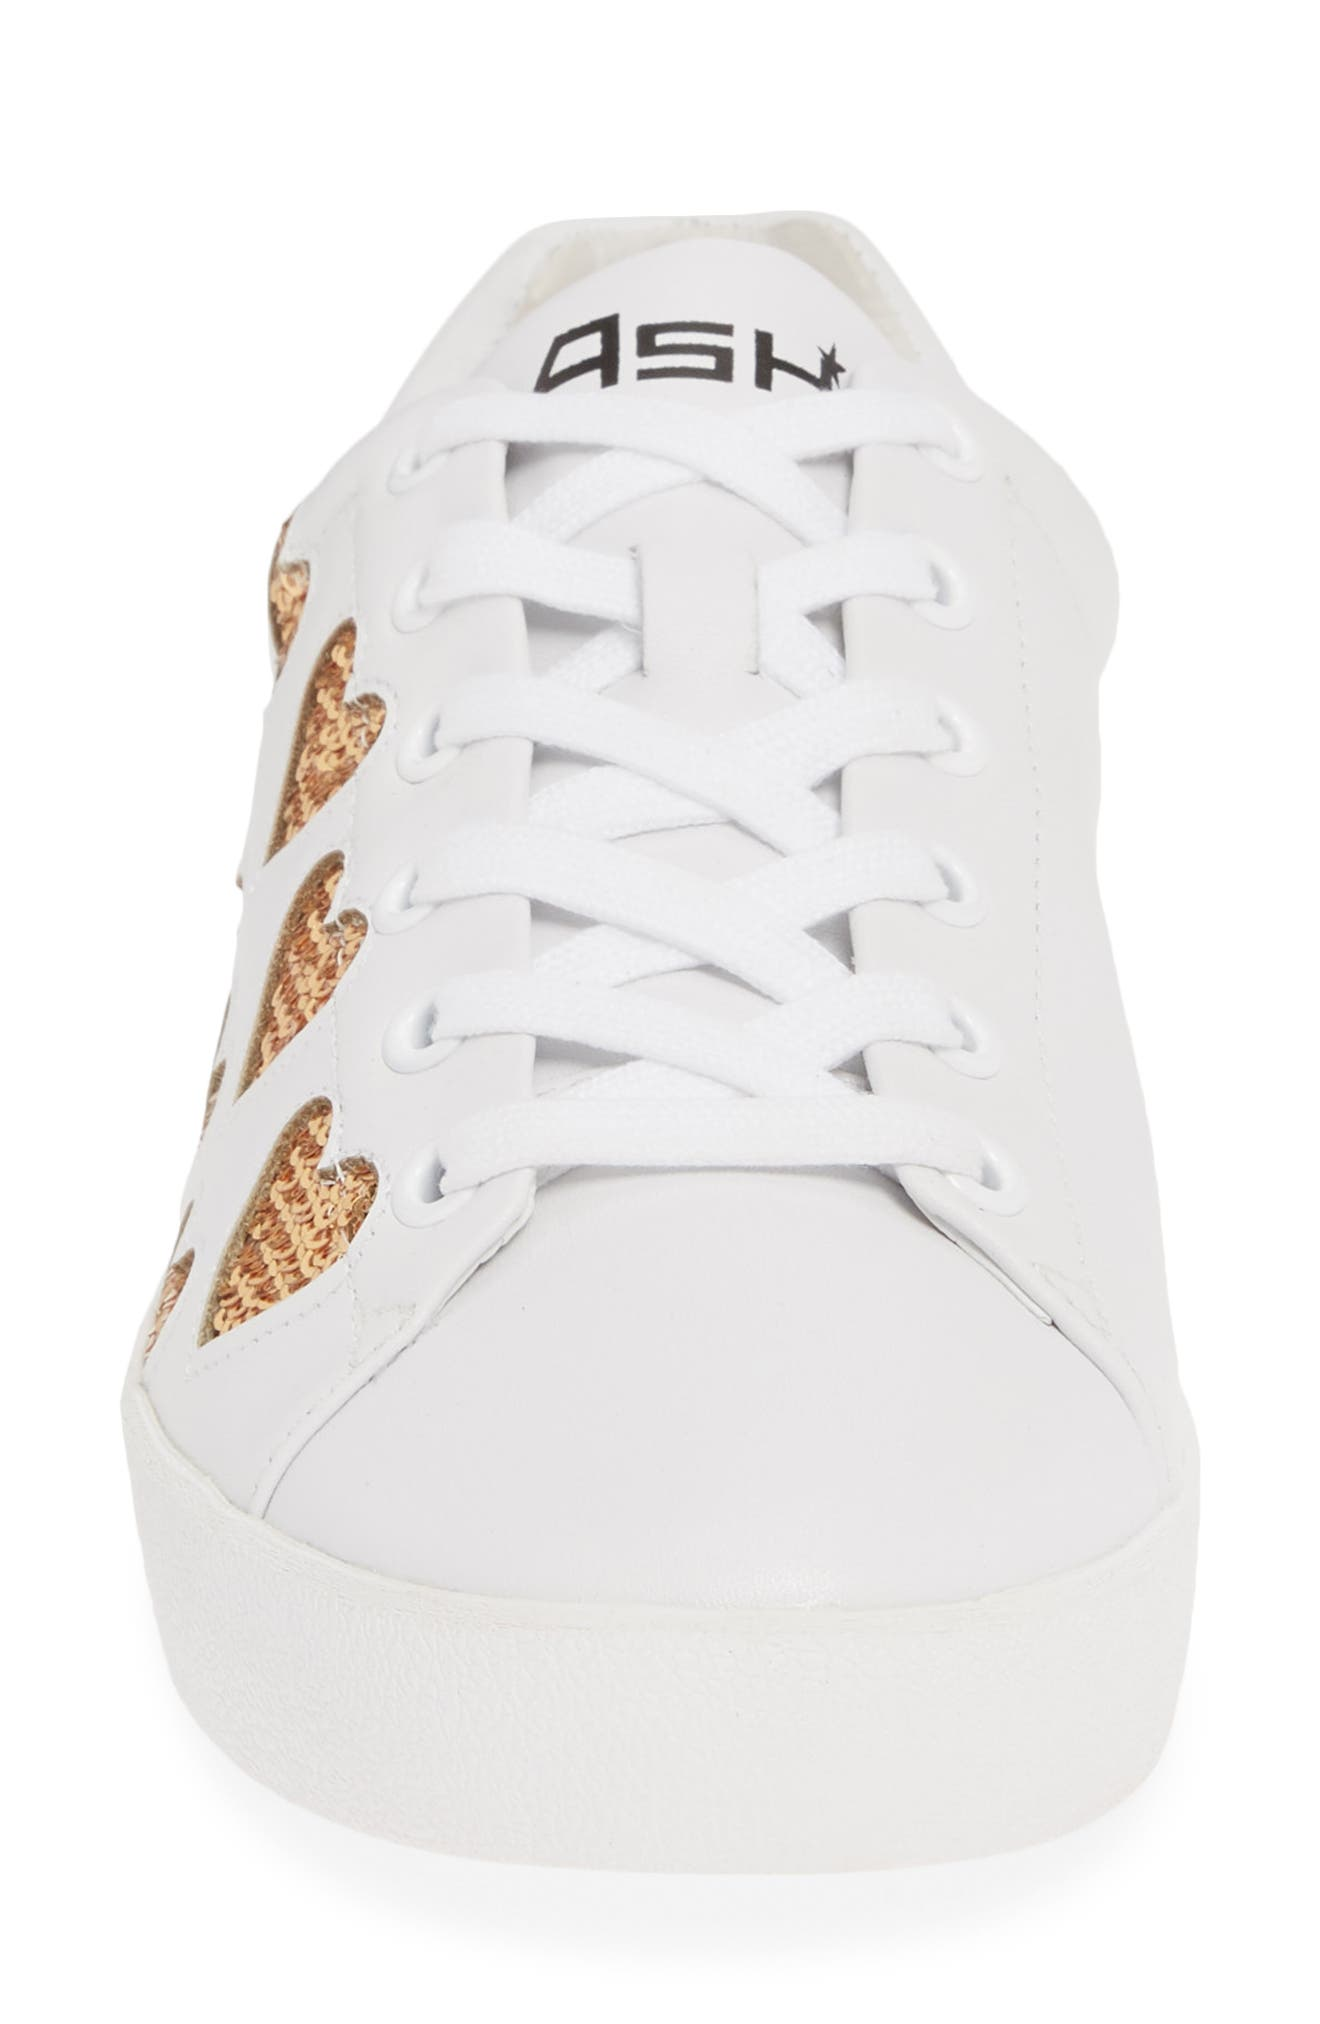 ASH, Nikita Sequin Heart Sneaker, Alternate thumbnail 4, color, WHITE LEATHER/ GOLD